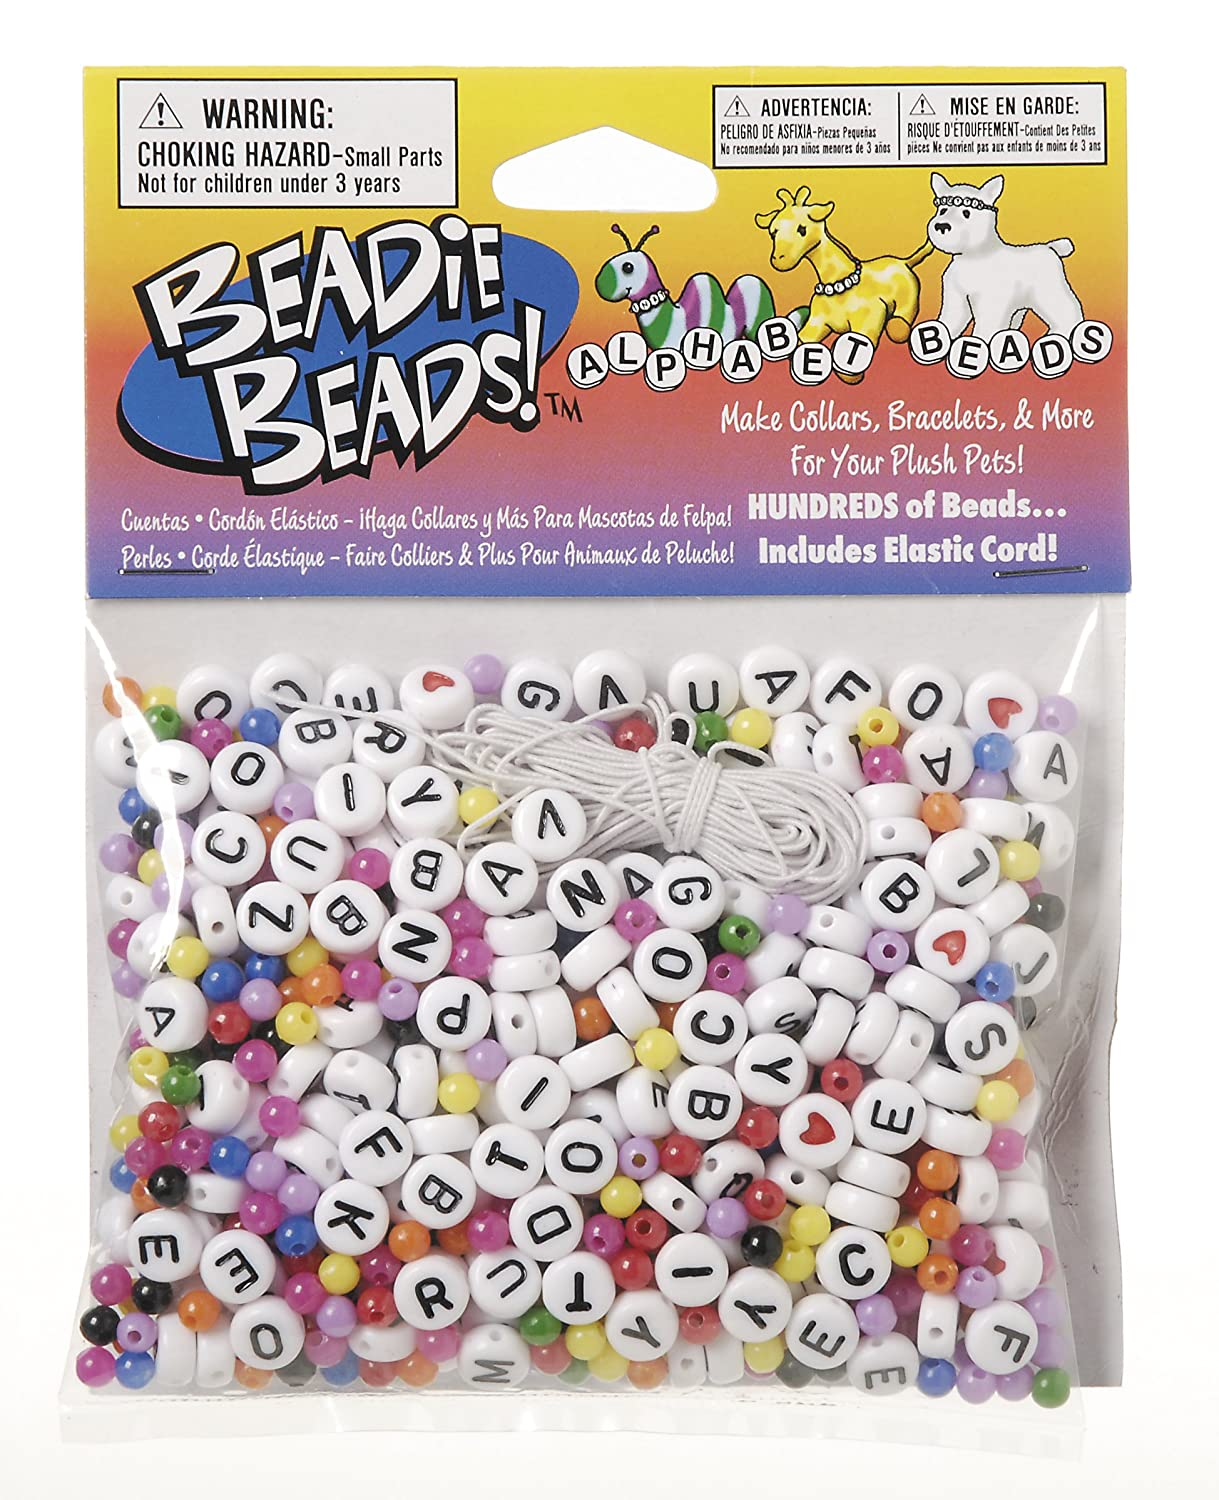 Amazon.com: Darice BAB-15 Black and White Alpha Bead Starter Kit with Multicolored Space Beads: Arts, Crafts & Sewing